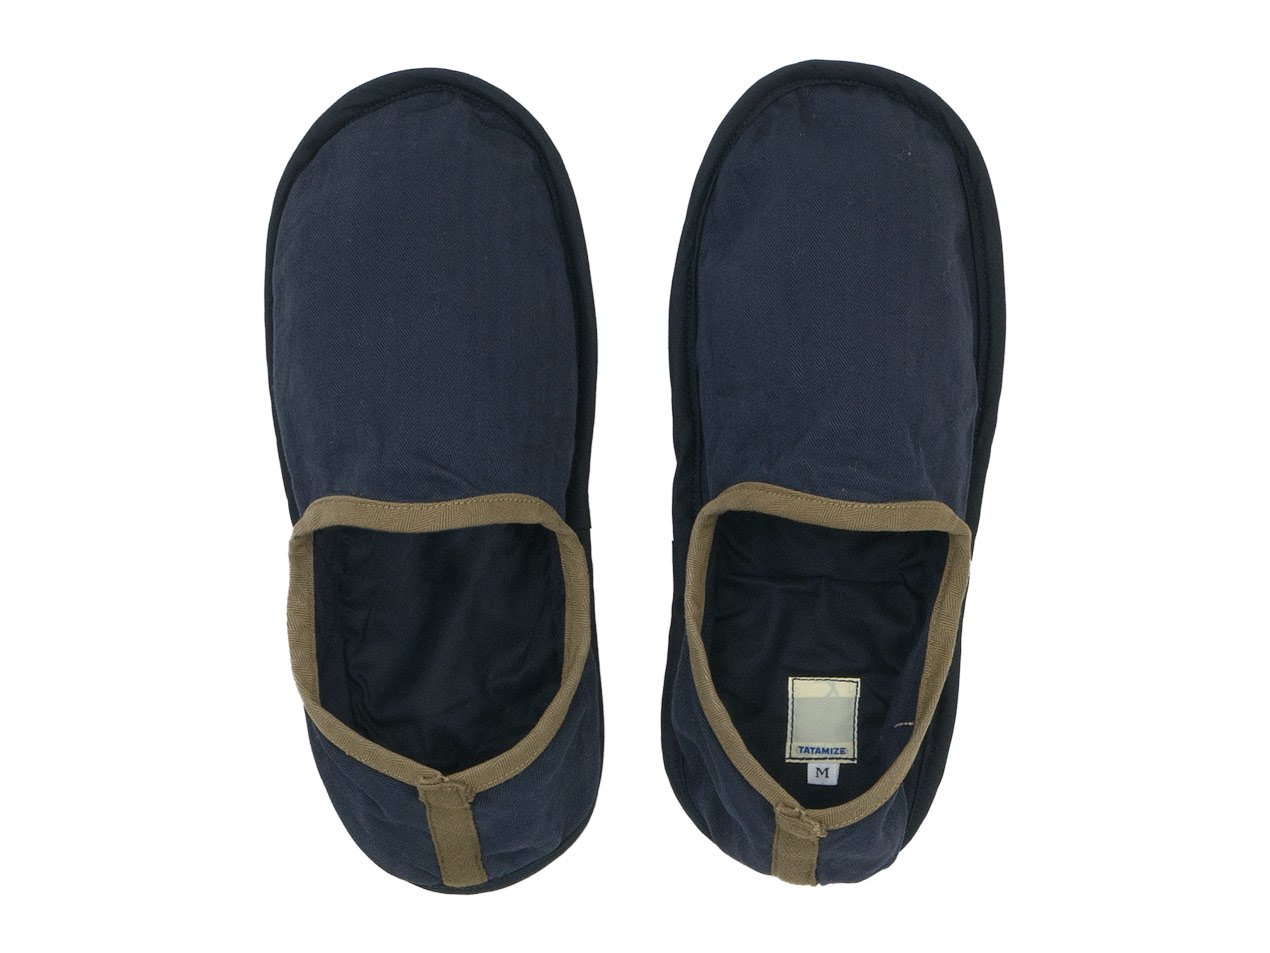 TATAMIZE ROOM SHOES NAVY